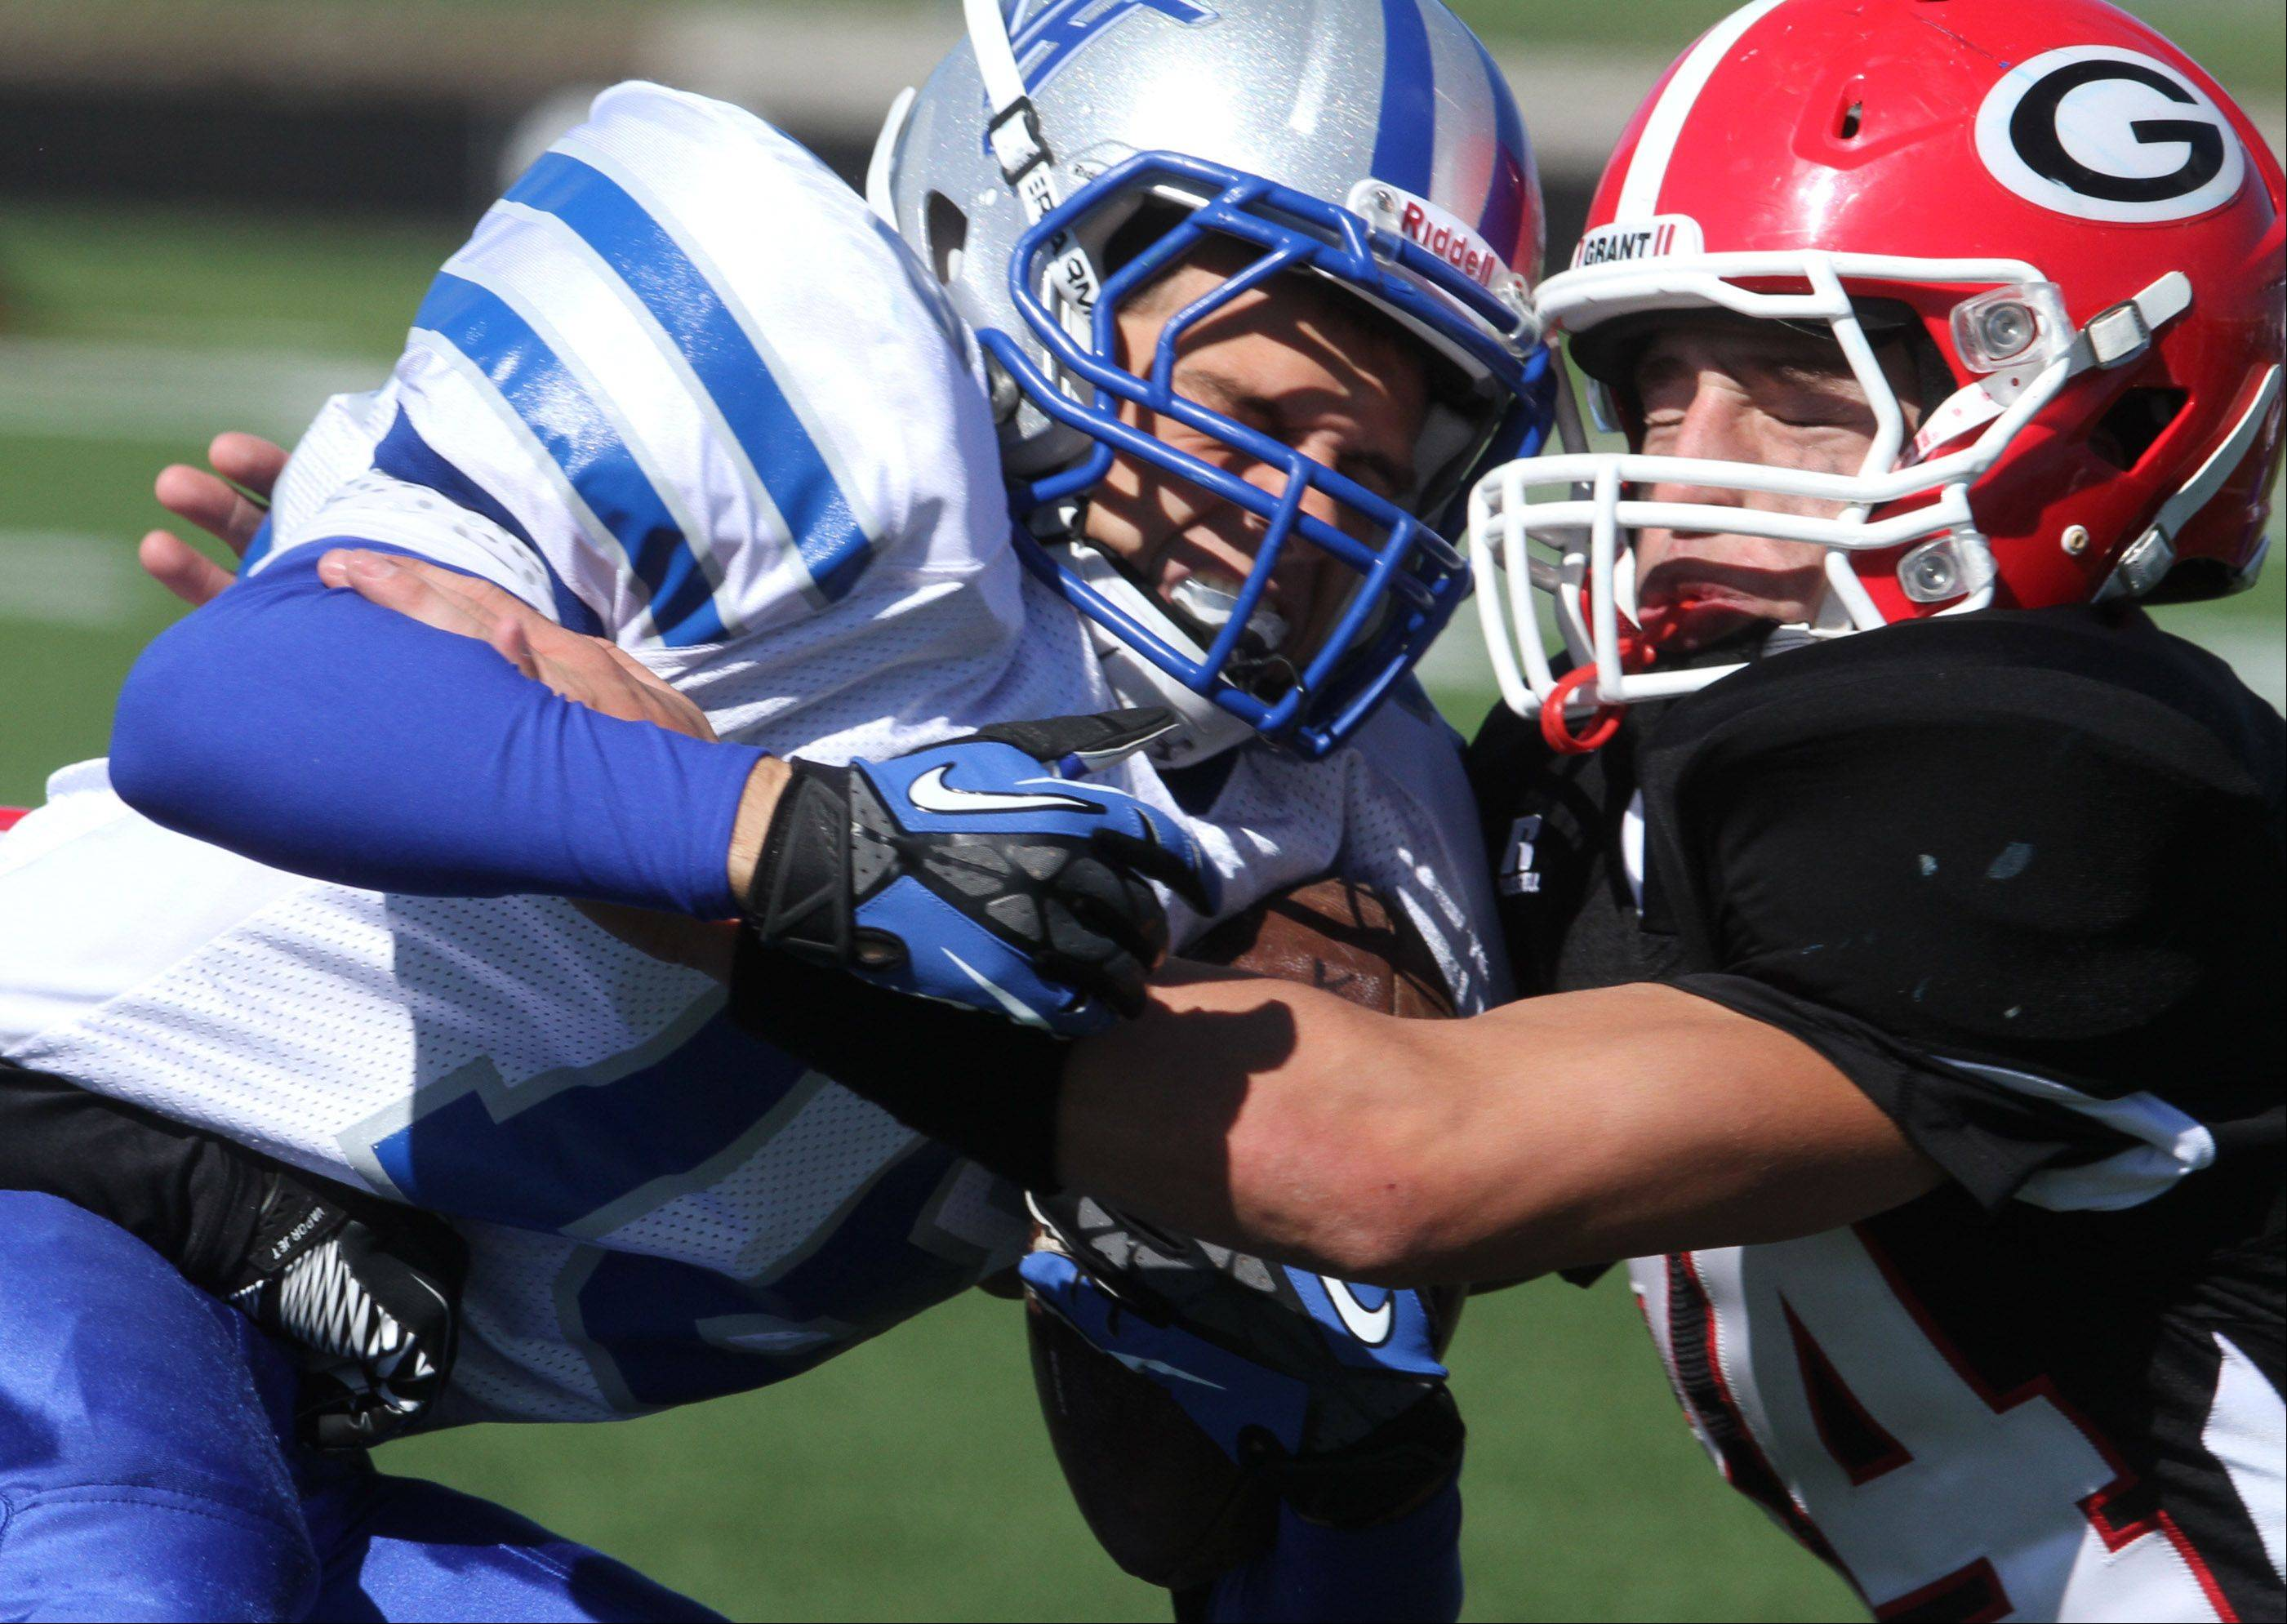 Vernon Hills running-back Ilya Fedorovich is tackled by Grant defender Dan King on Saturday, September 22.